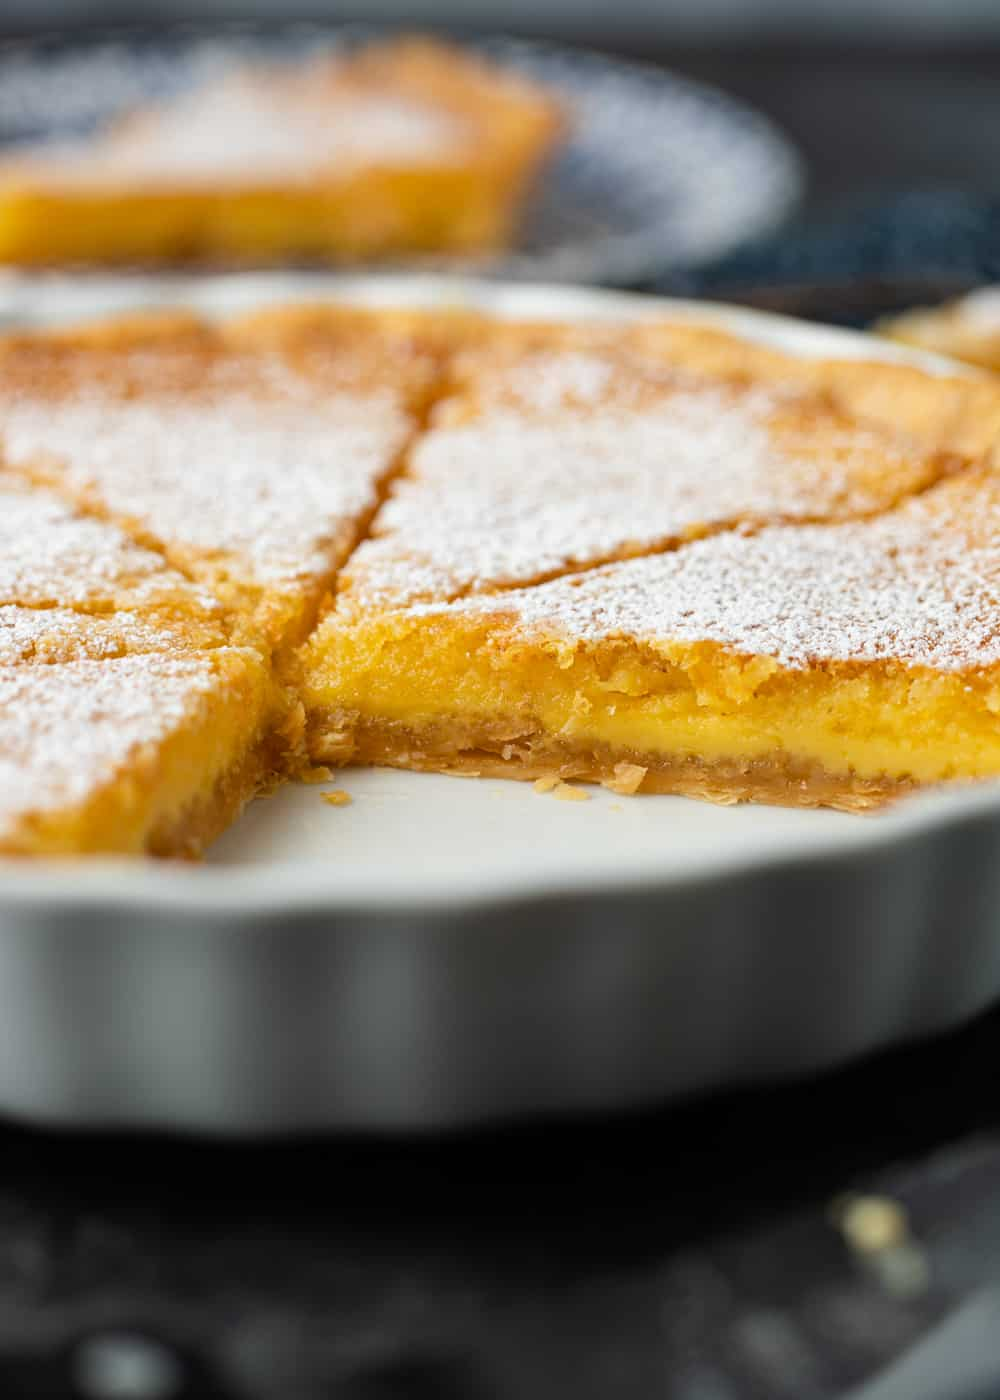 sliced lemon tart in white pan